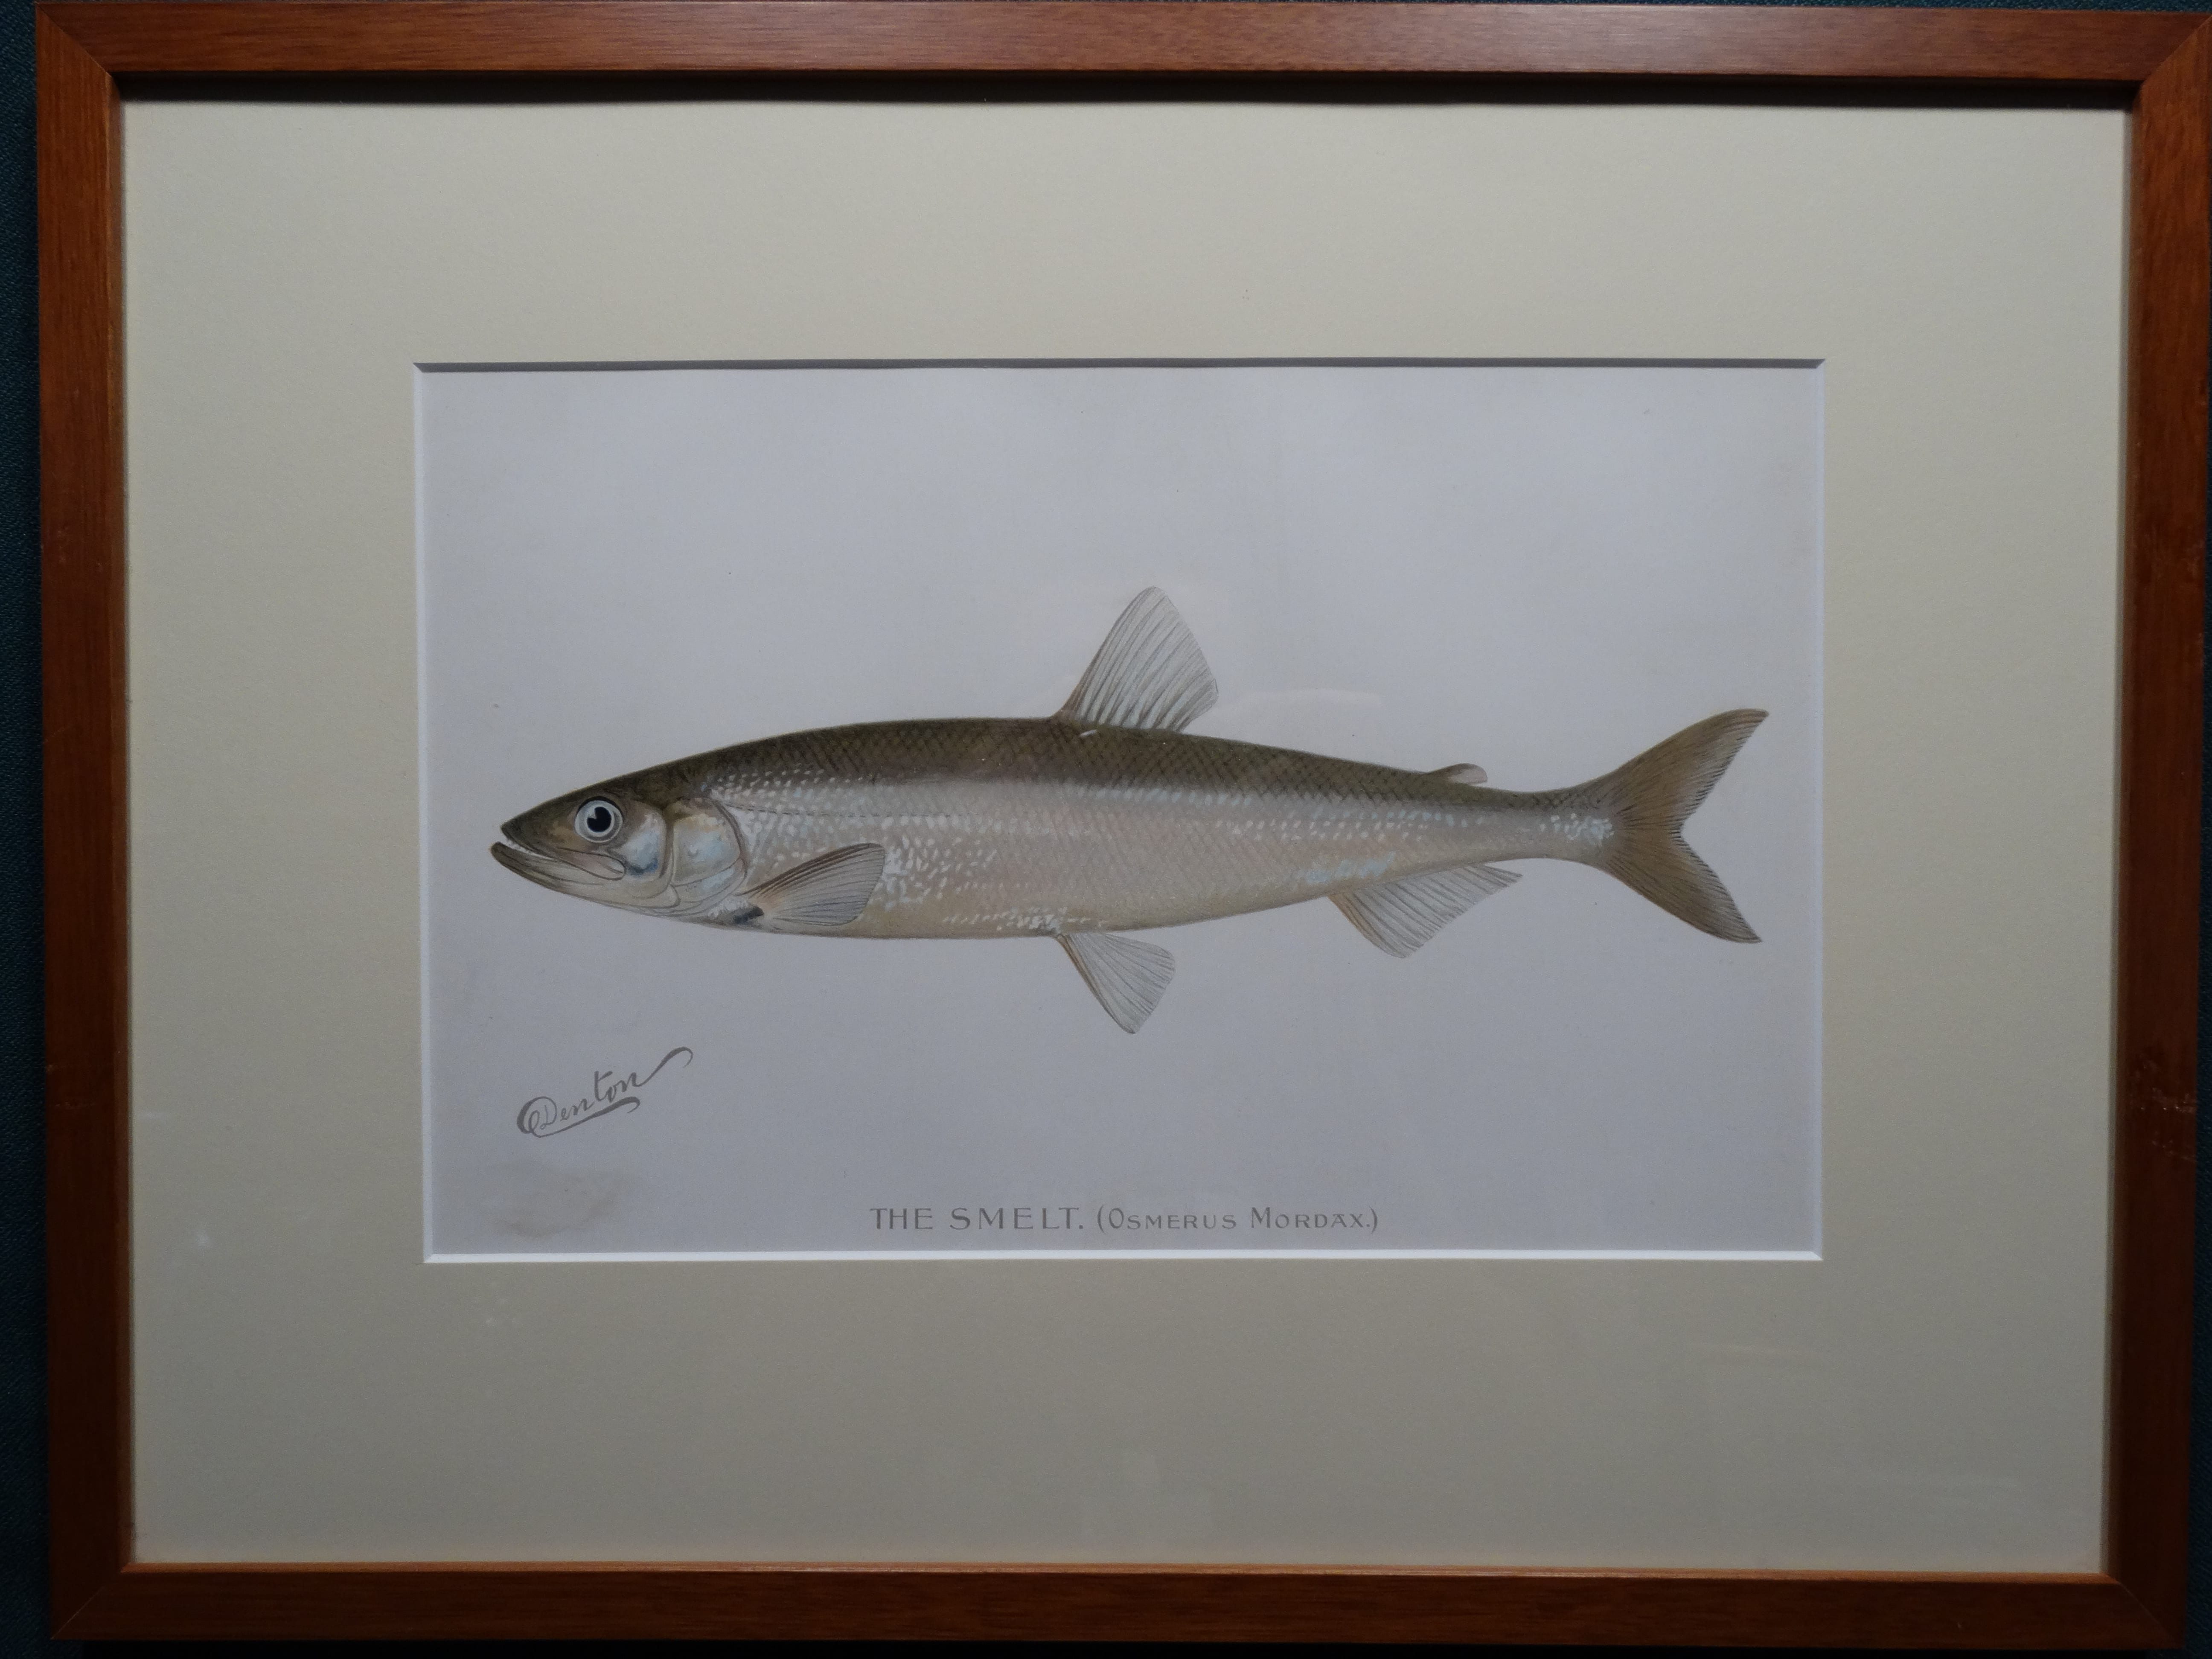 The Smelt by Denton Framed $115. with free US shipping